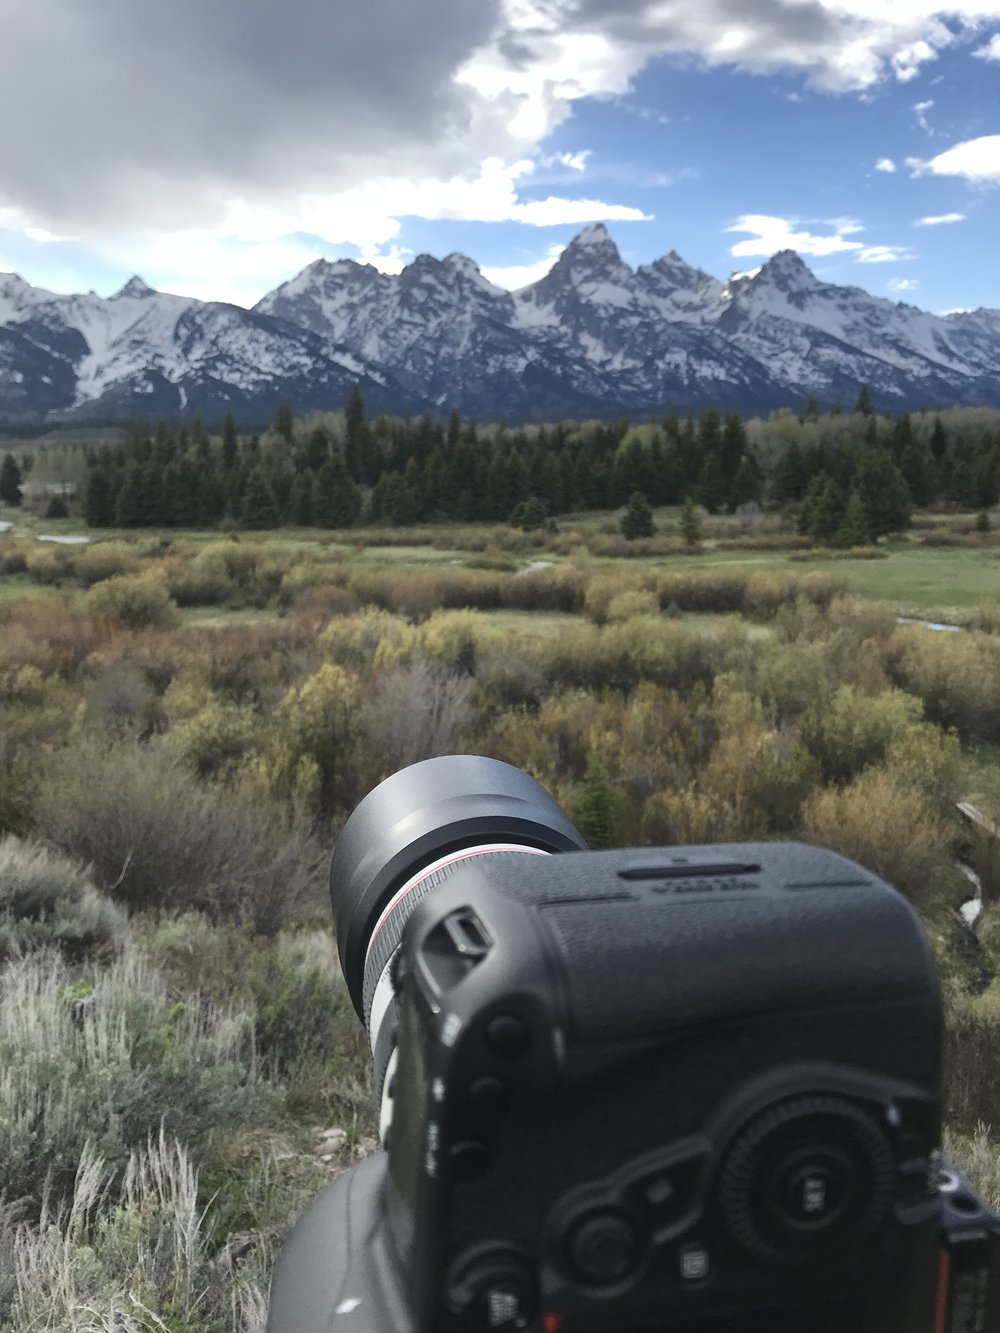 Here's a #BTS of my camera and the Tetons